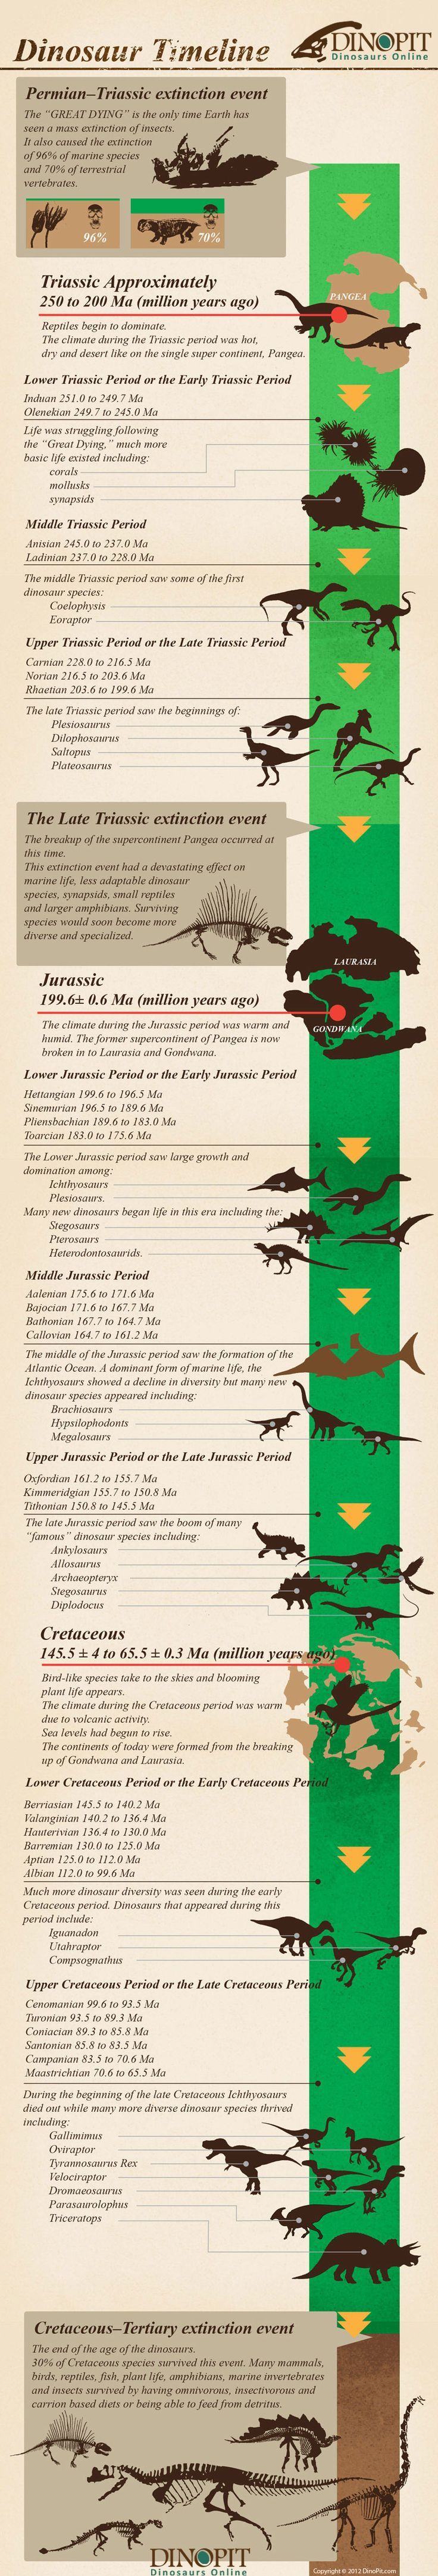 Ever wondered what the dinosaur timeline looks like? Take a look at this infographic copyrighted to http://www.dinopit.com